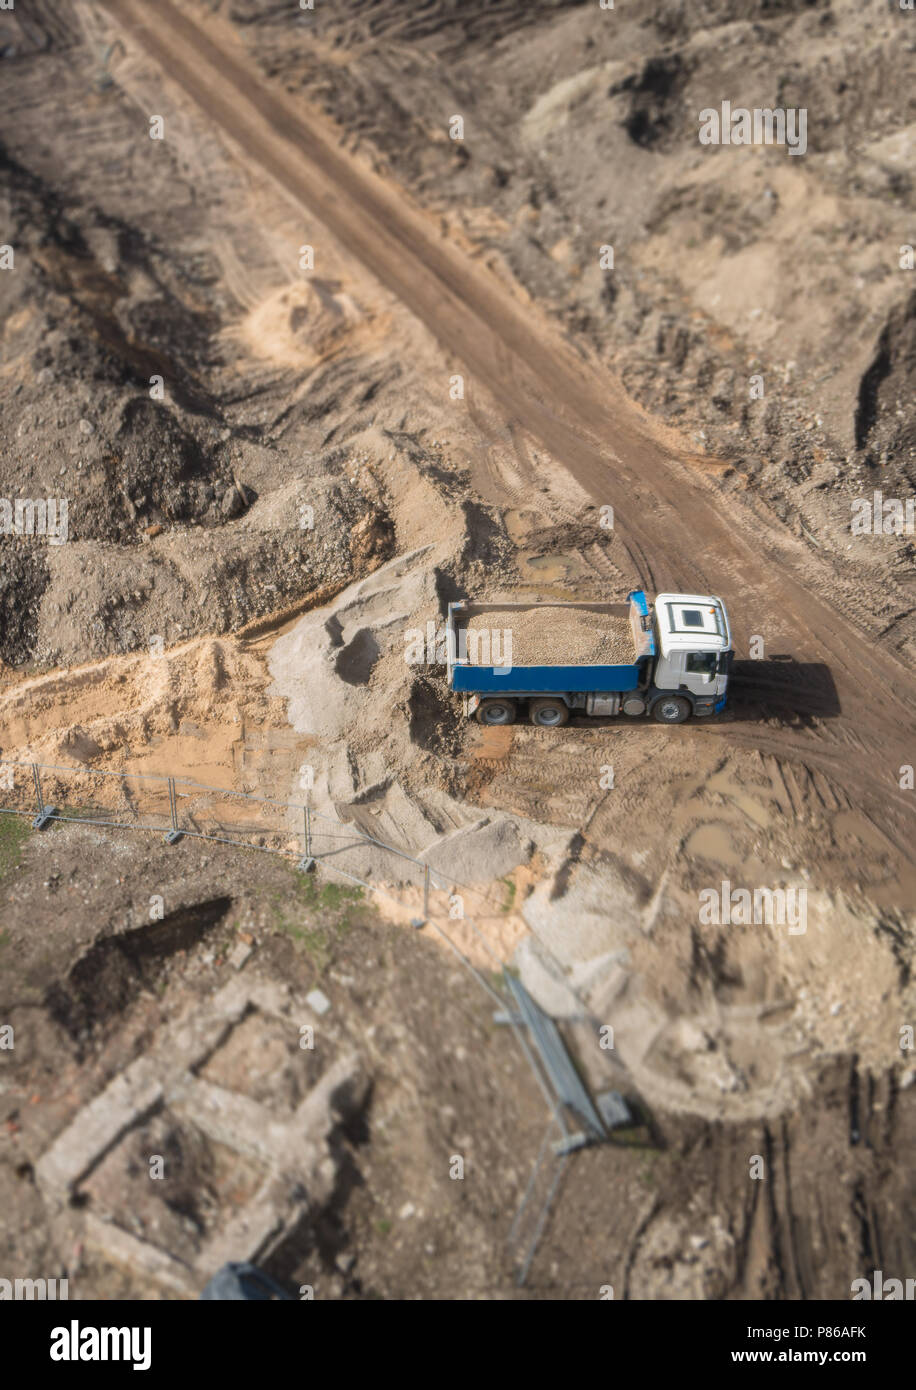 Truck with gravel on the construction site. View from above. - Stock Image